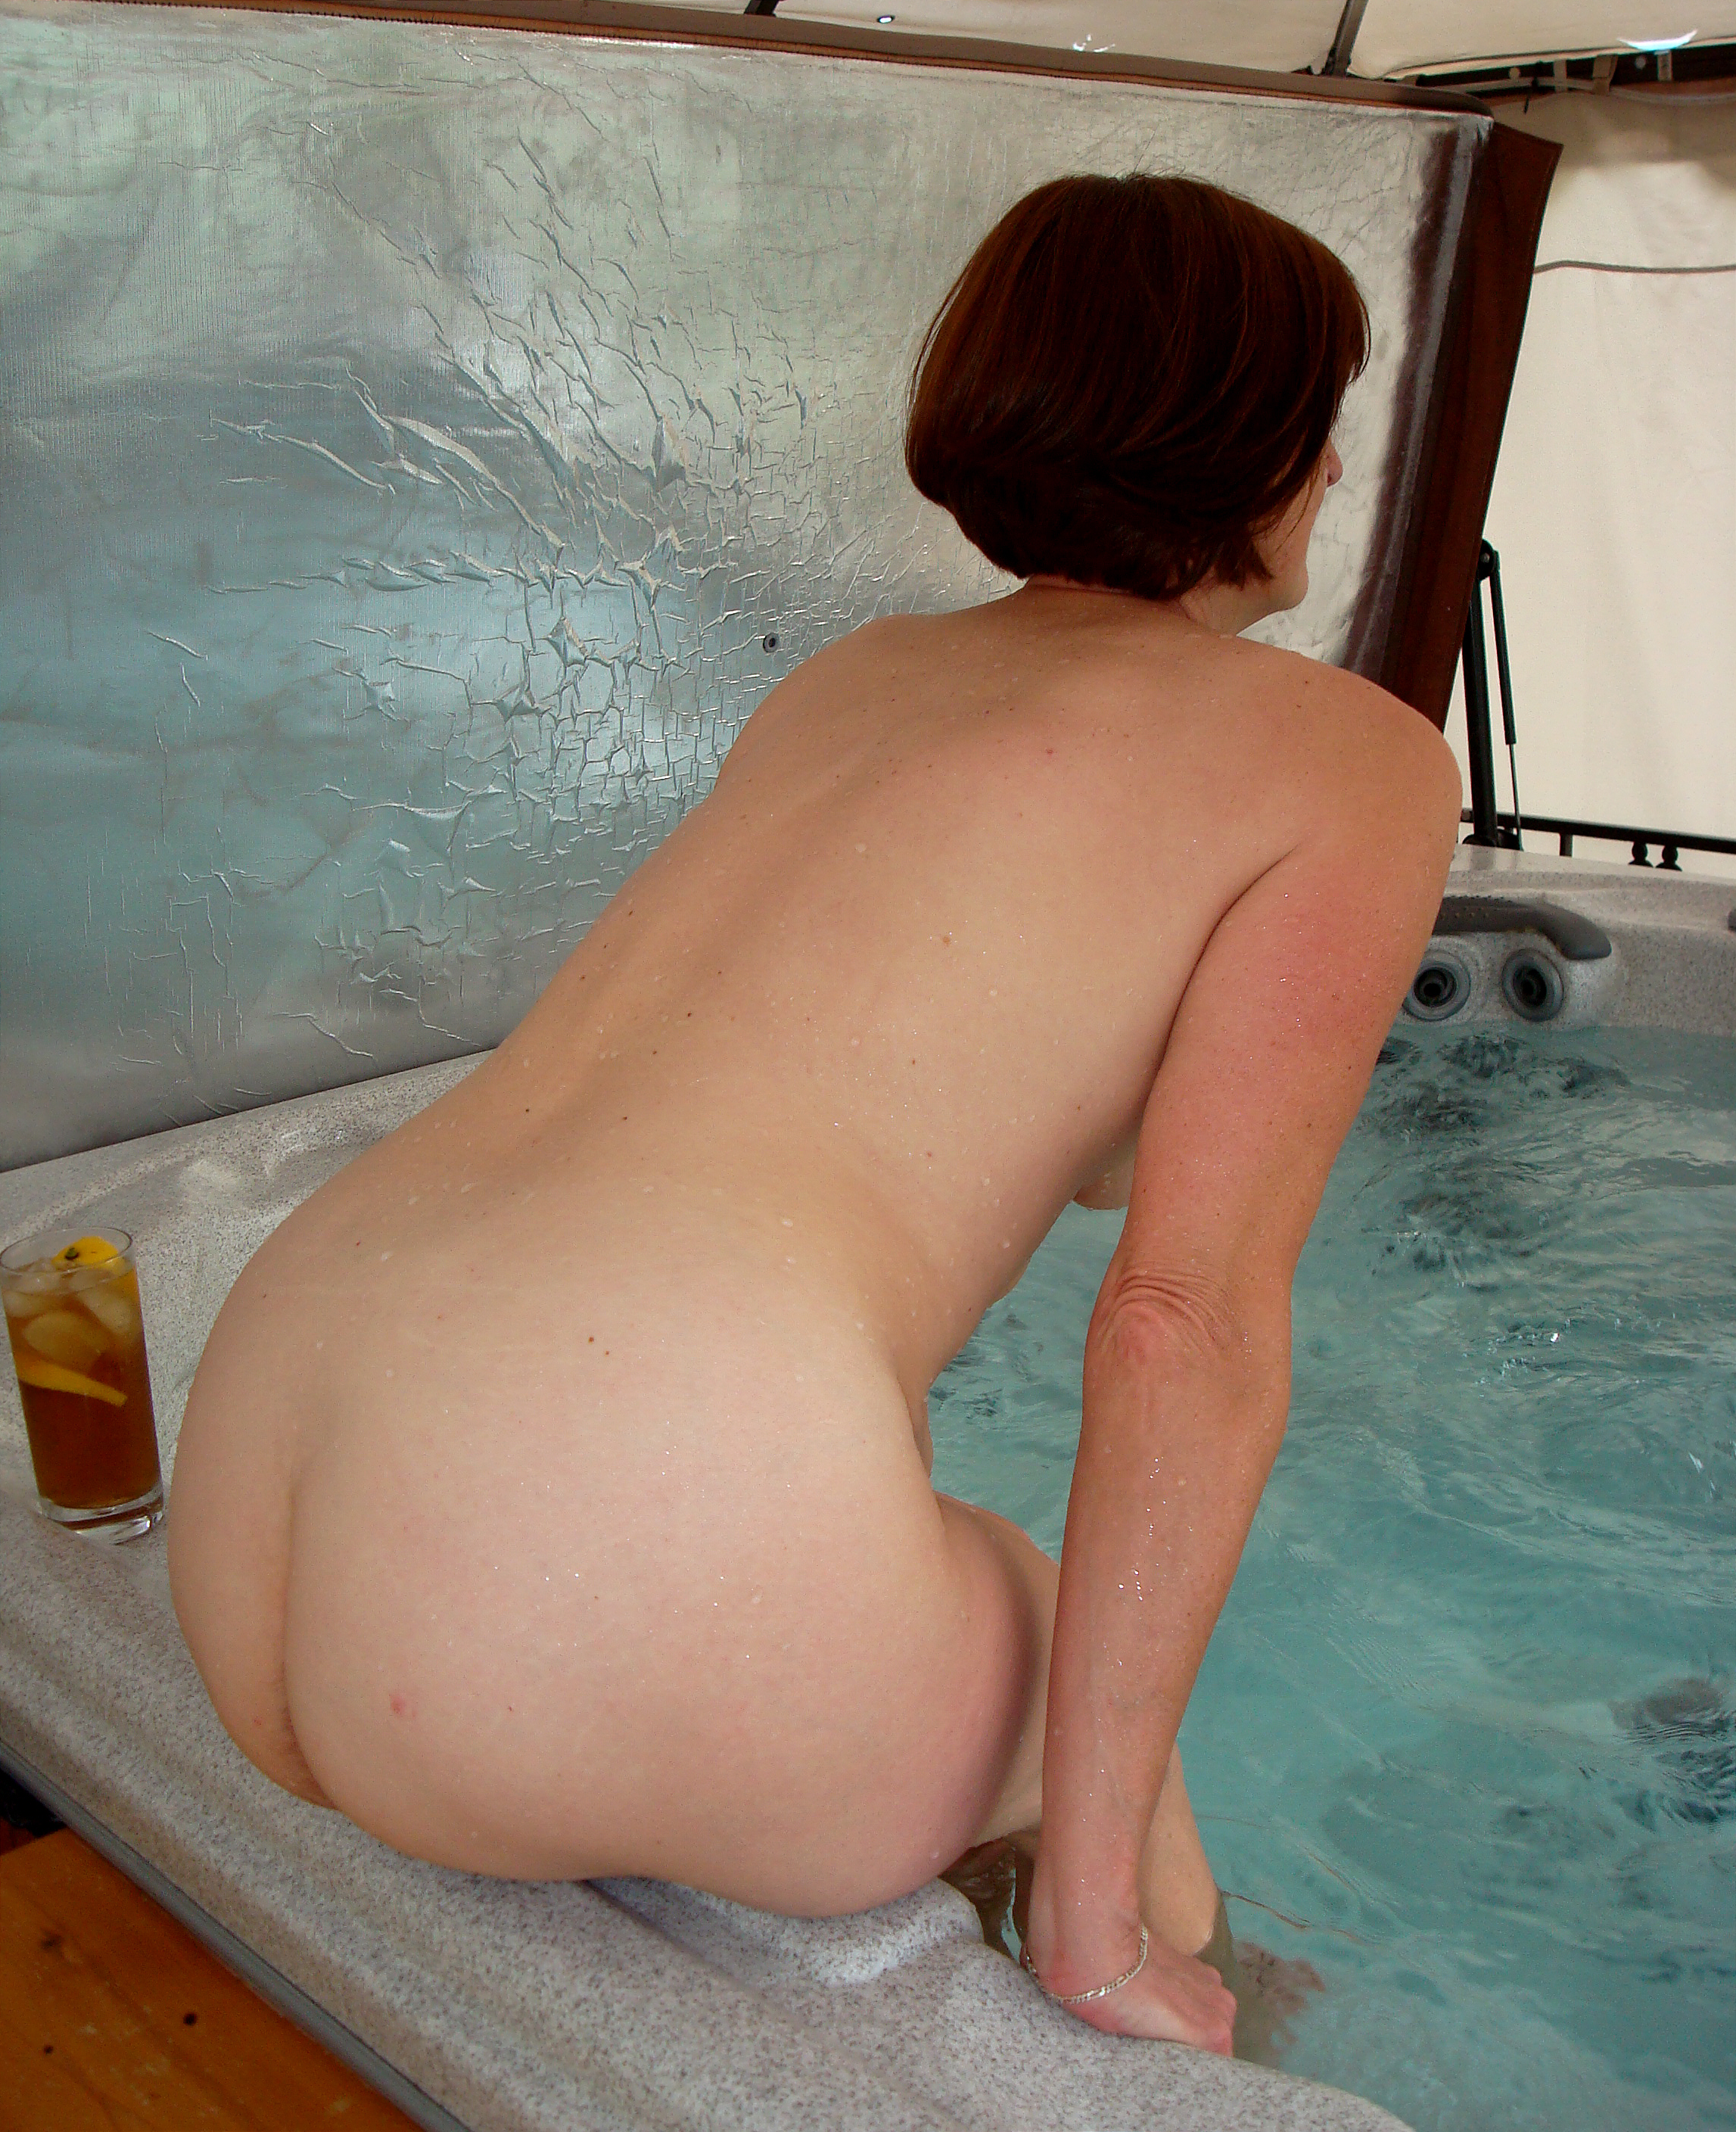 Not pay Naked hot tub wife share